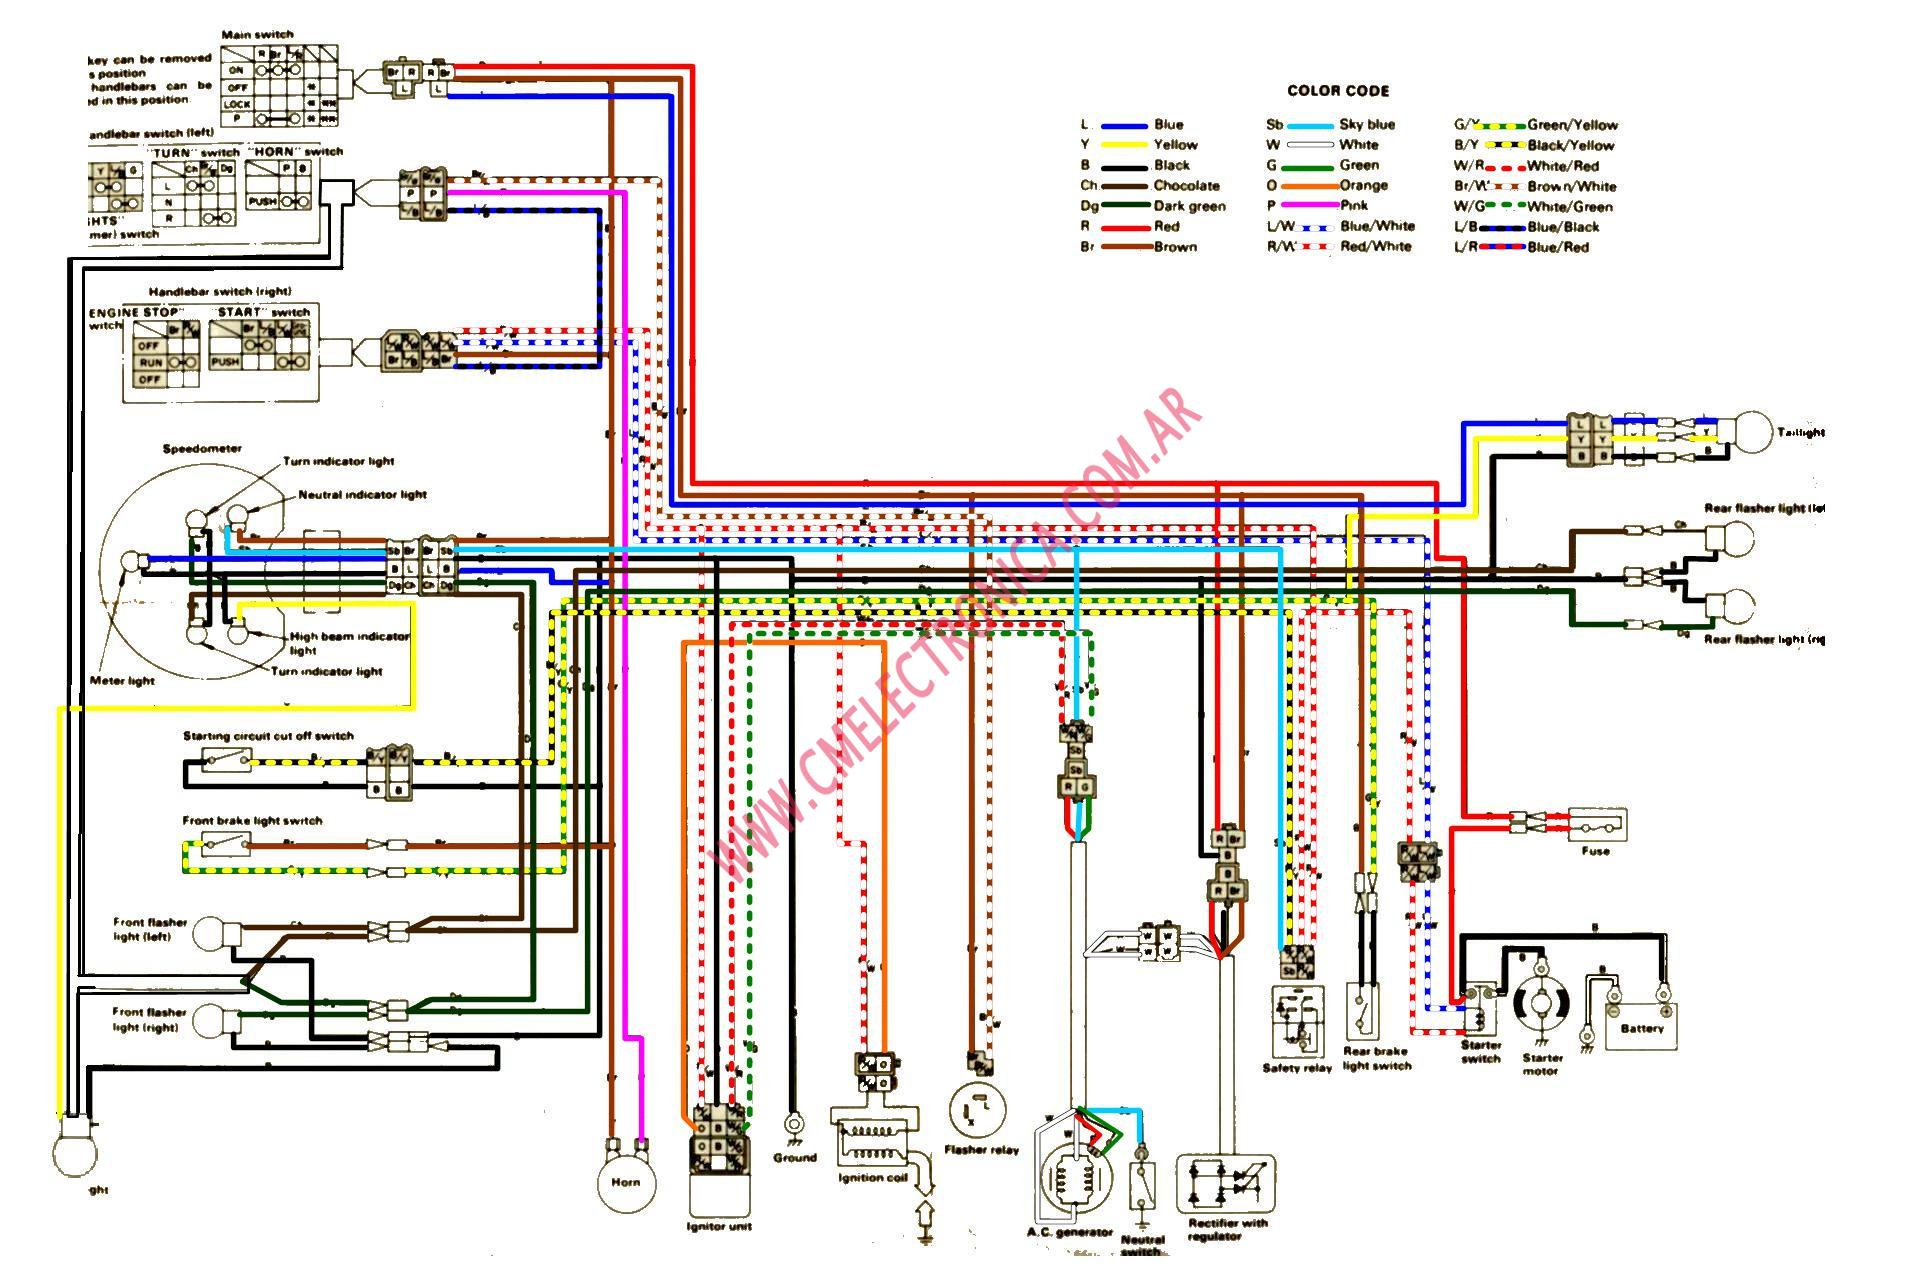 yamaha yz250 wiring diagram 1980 yamaha sr250 - a tracker named mexico